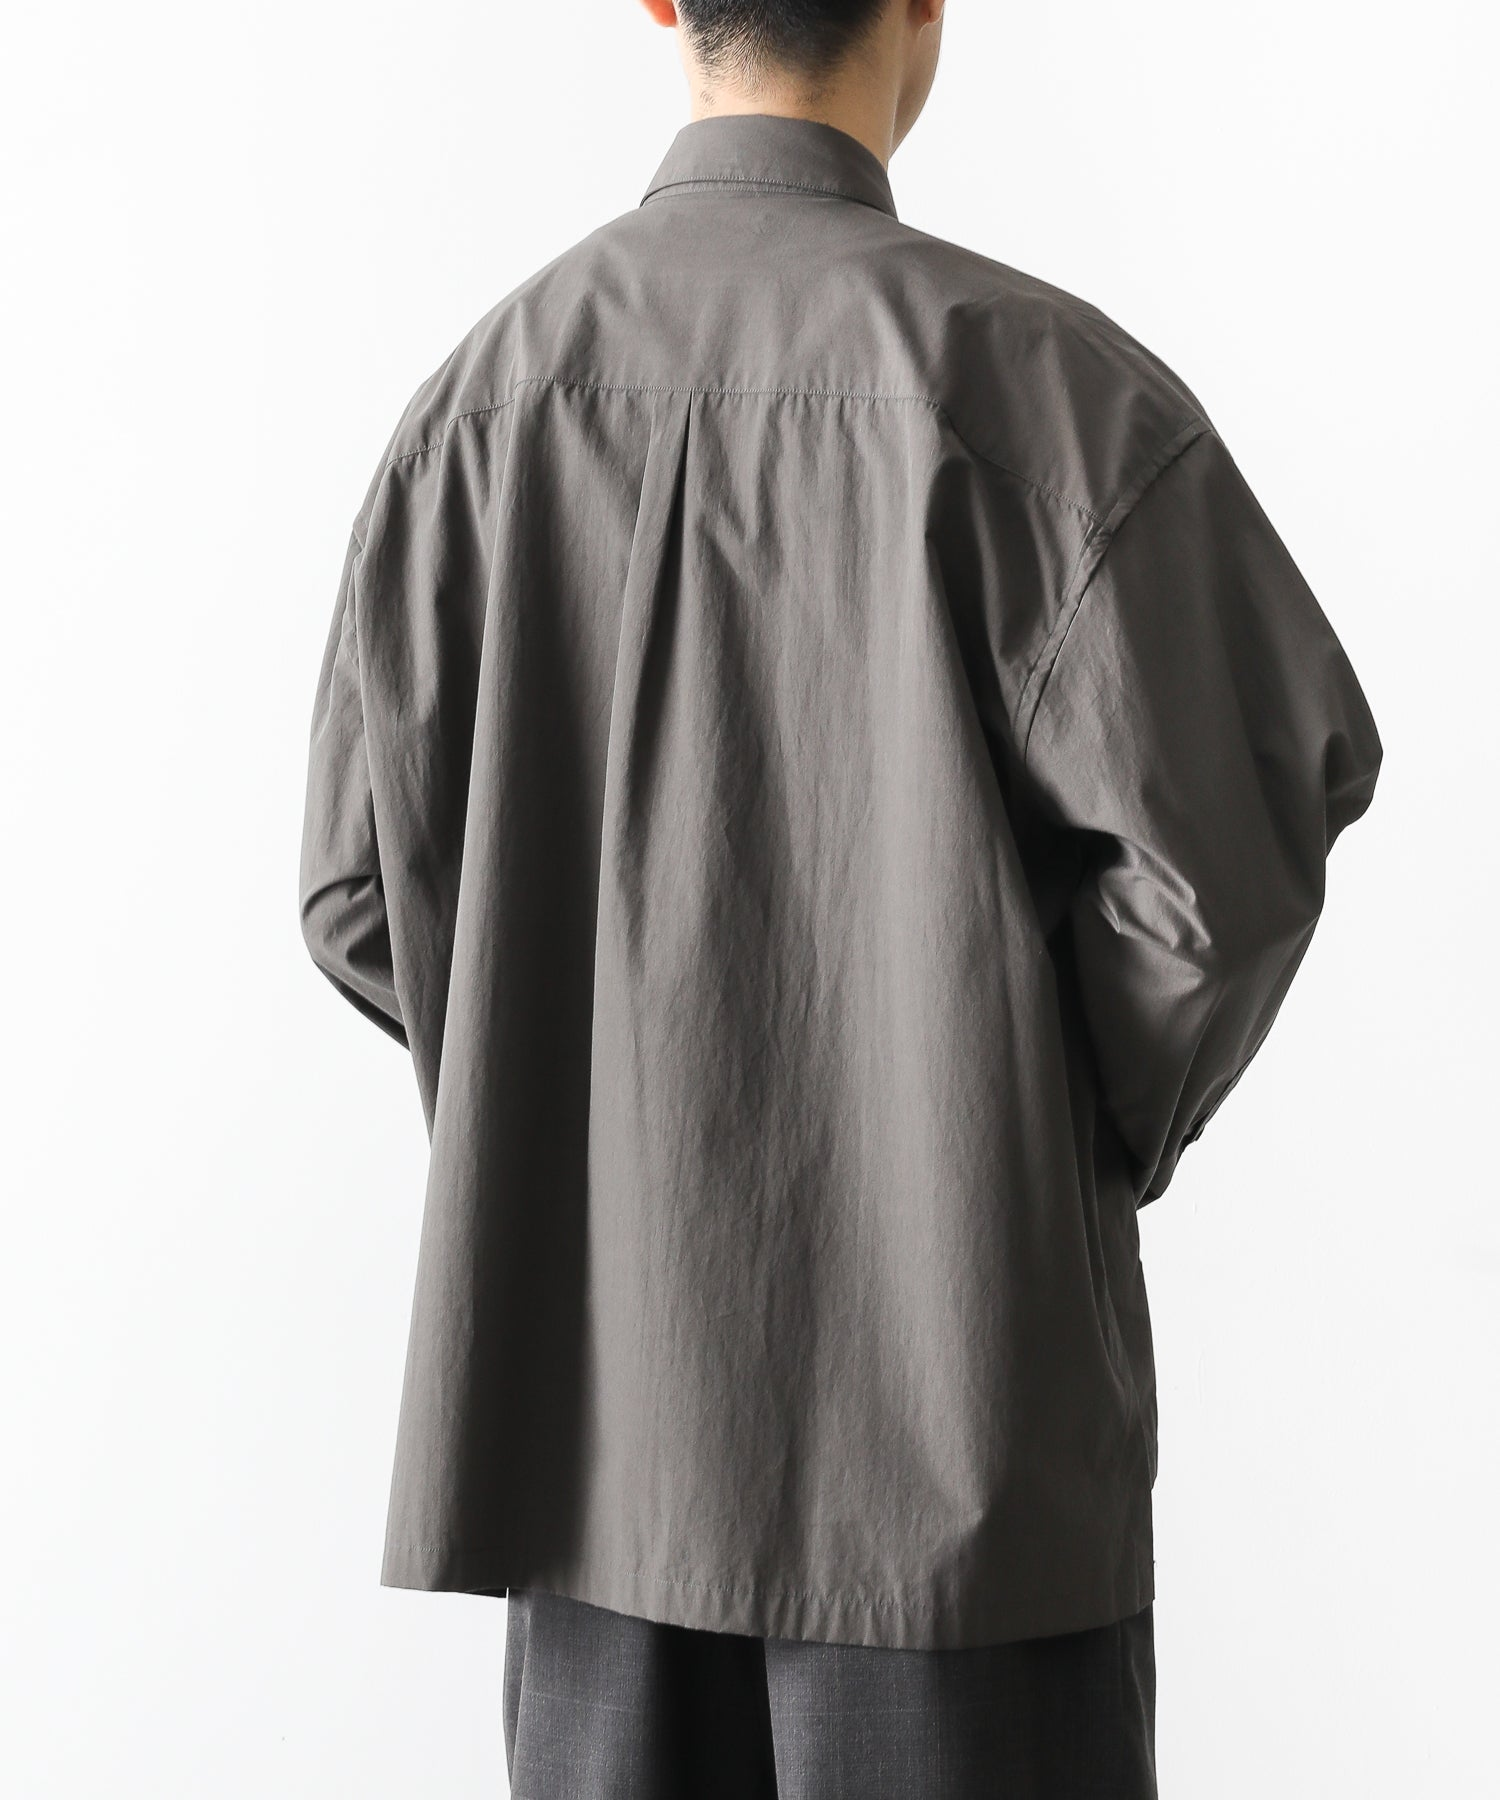 【stein】OVER SLEEVE COMBINE SHIRTS JACKET